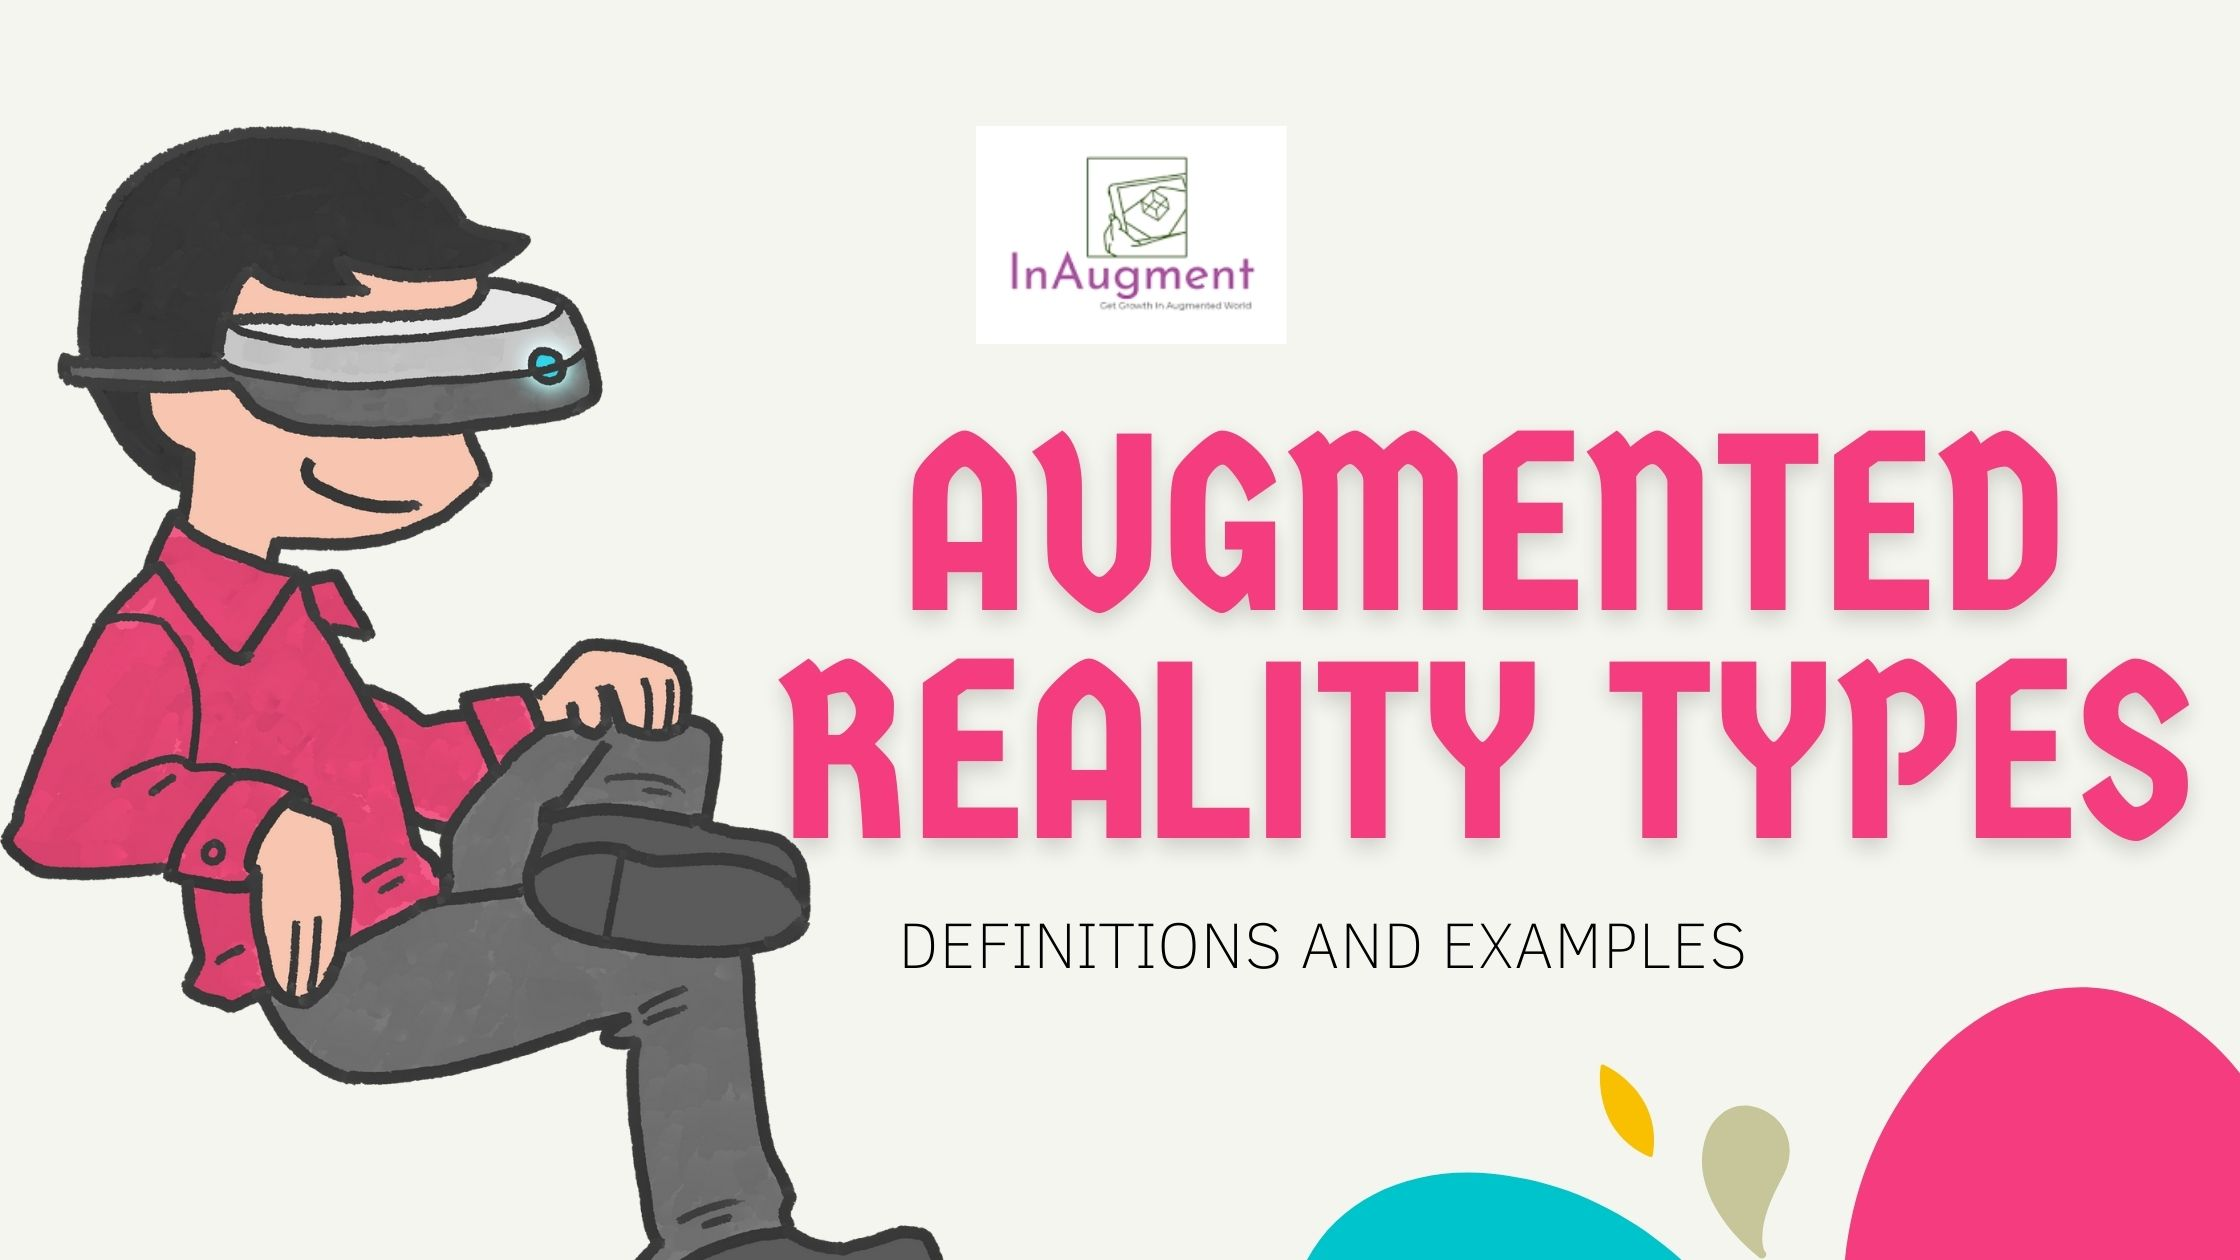 Augmented Reality types